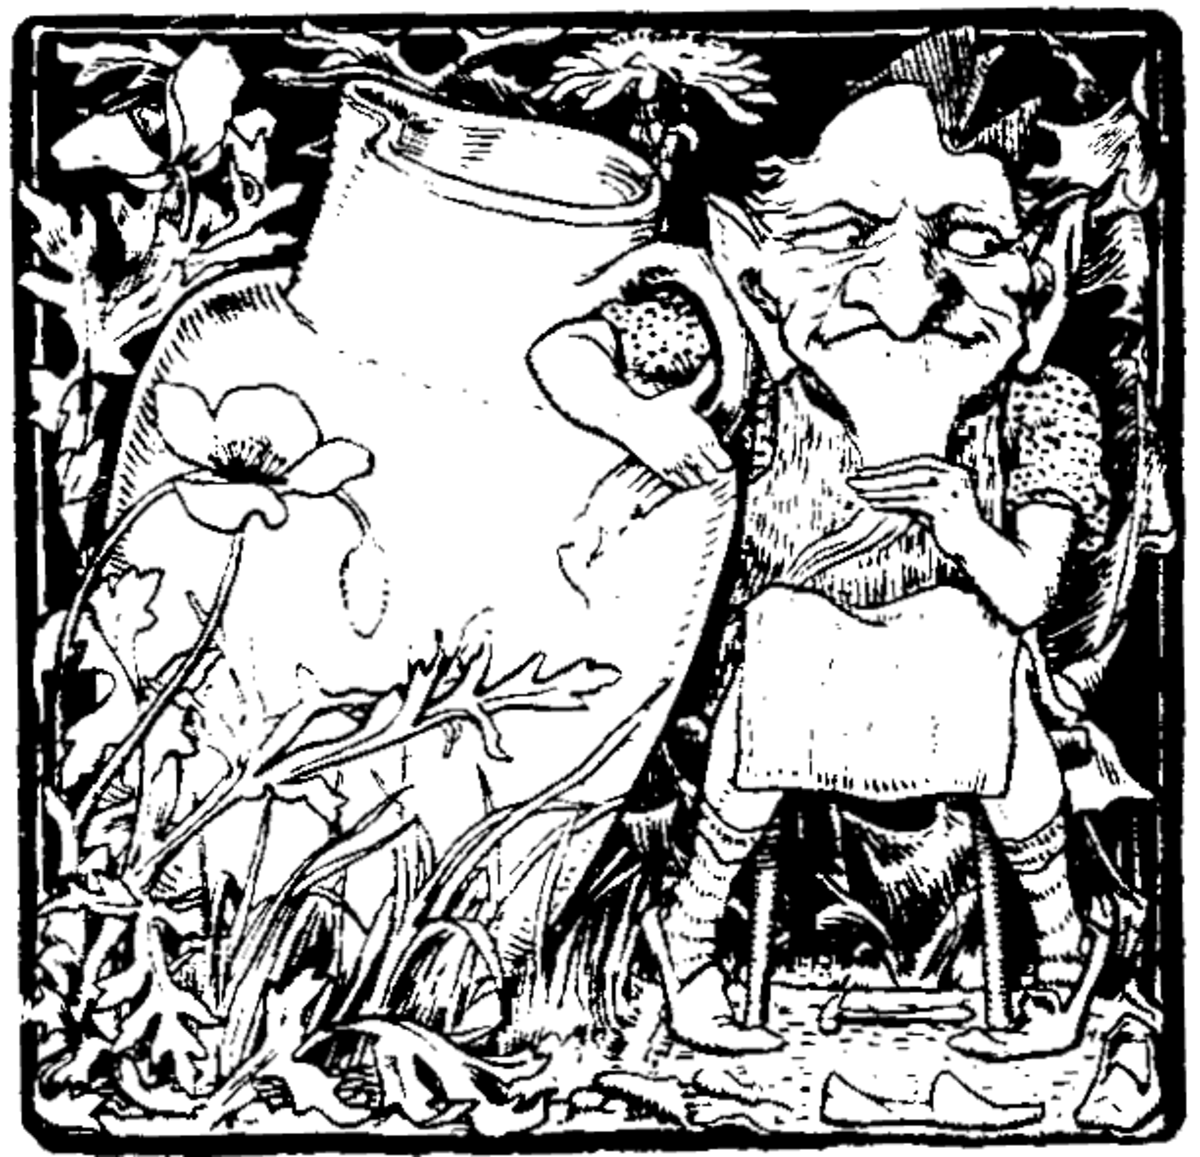 Clurichaun, the TRUE Irish fairy. One of my favorite species of folklore creature is the fairy, as they are extremely versatile, mischievous spirits which means